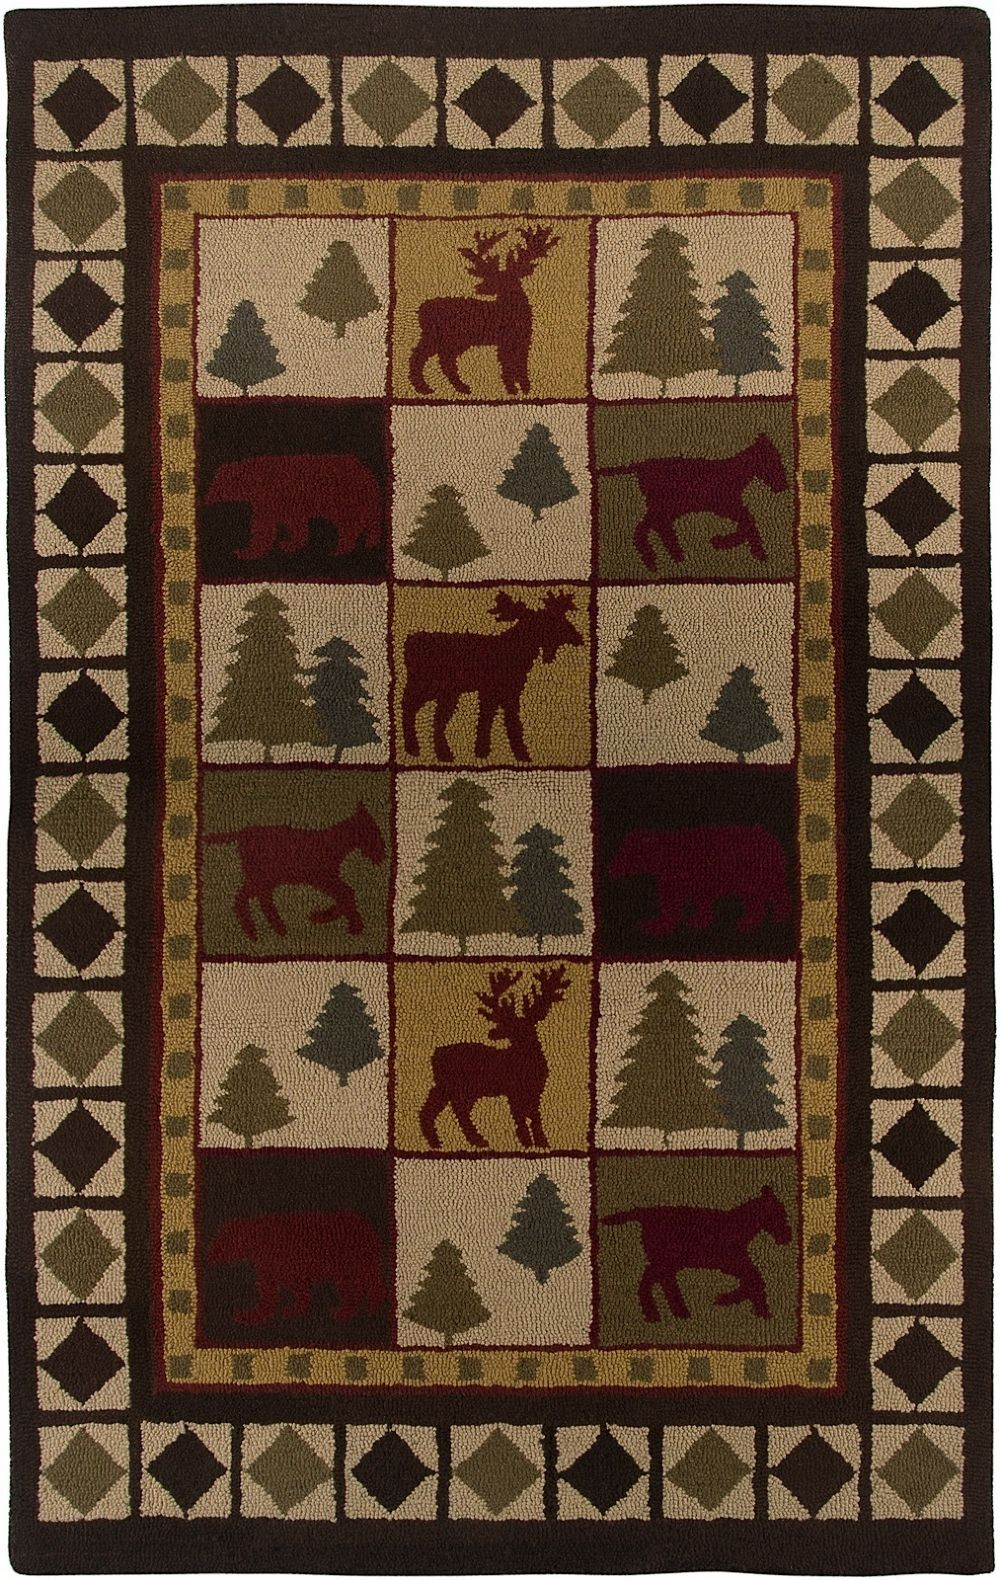 rizzy rugs country southwestern/lodge area rug collection